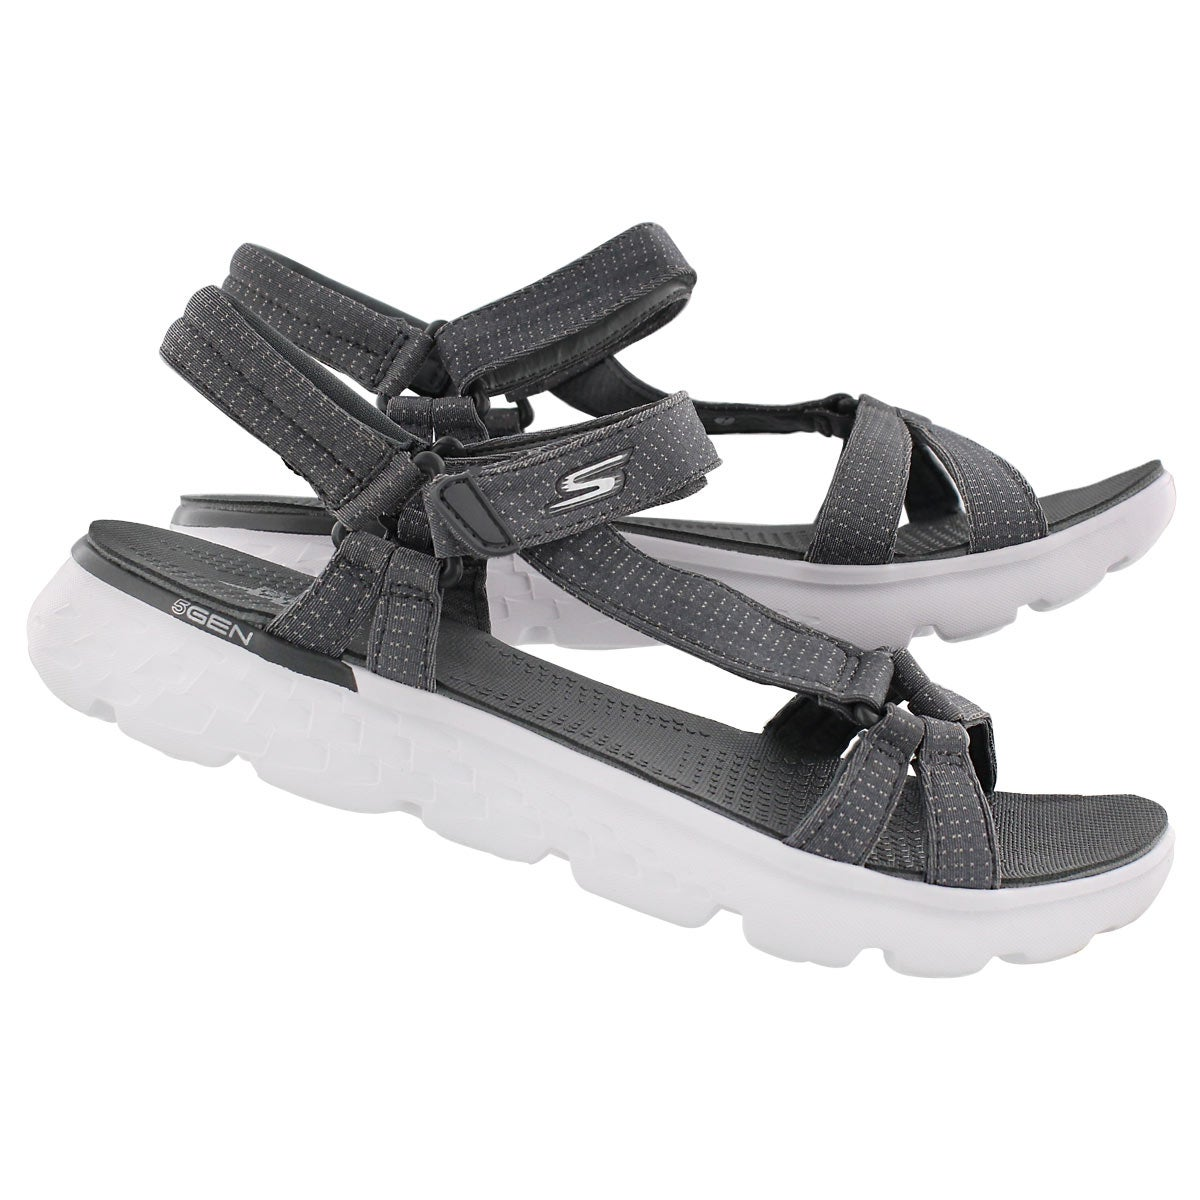 Lds On-The-Go 400 charcoal sport sandal